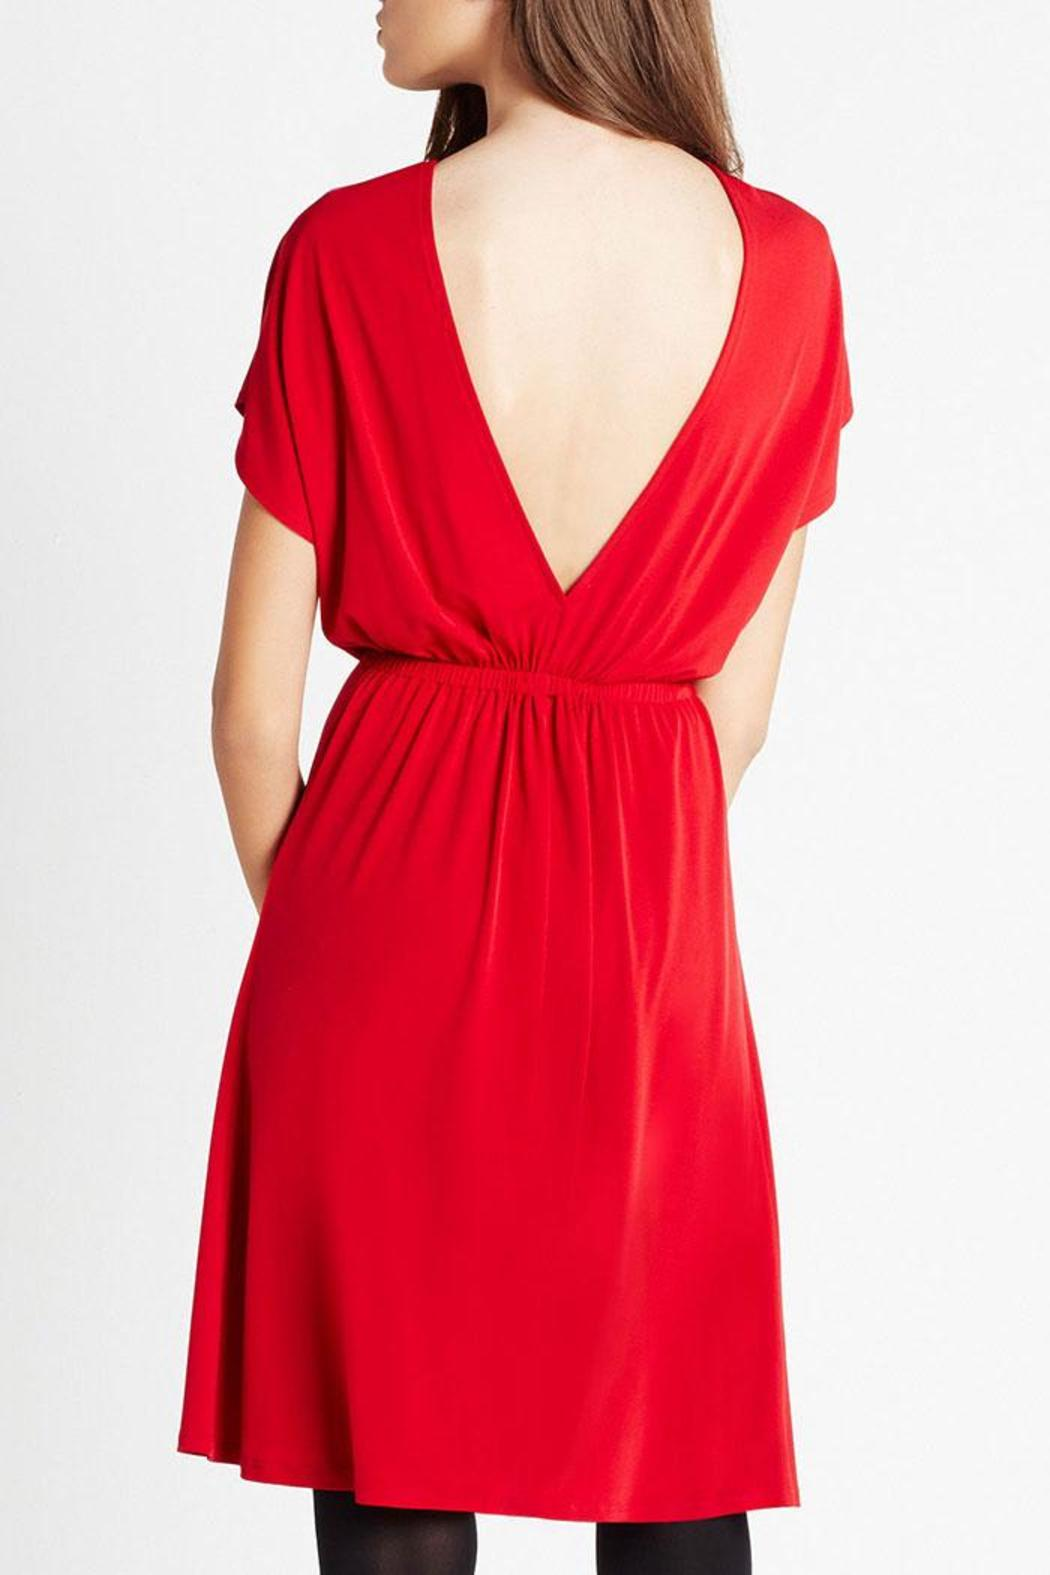 BCBGeneration Little Red Dress - Side Cropped Image